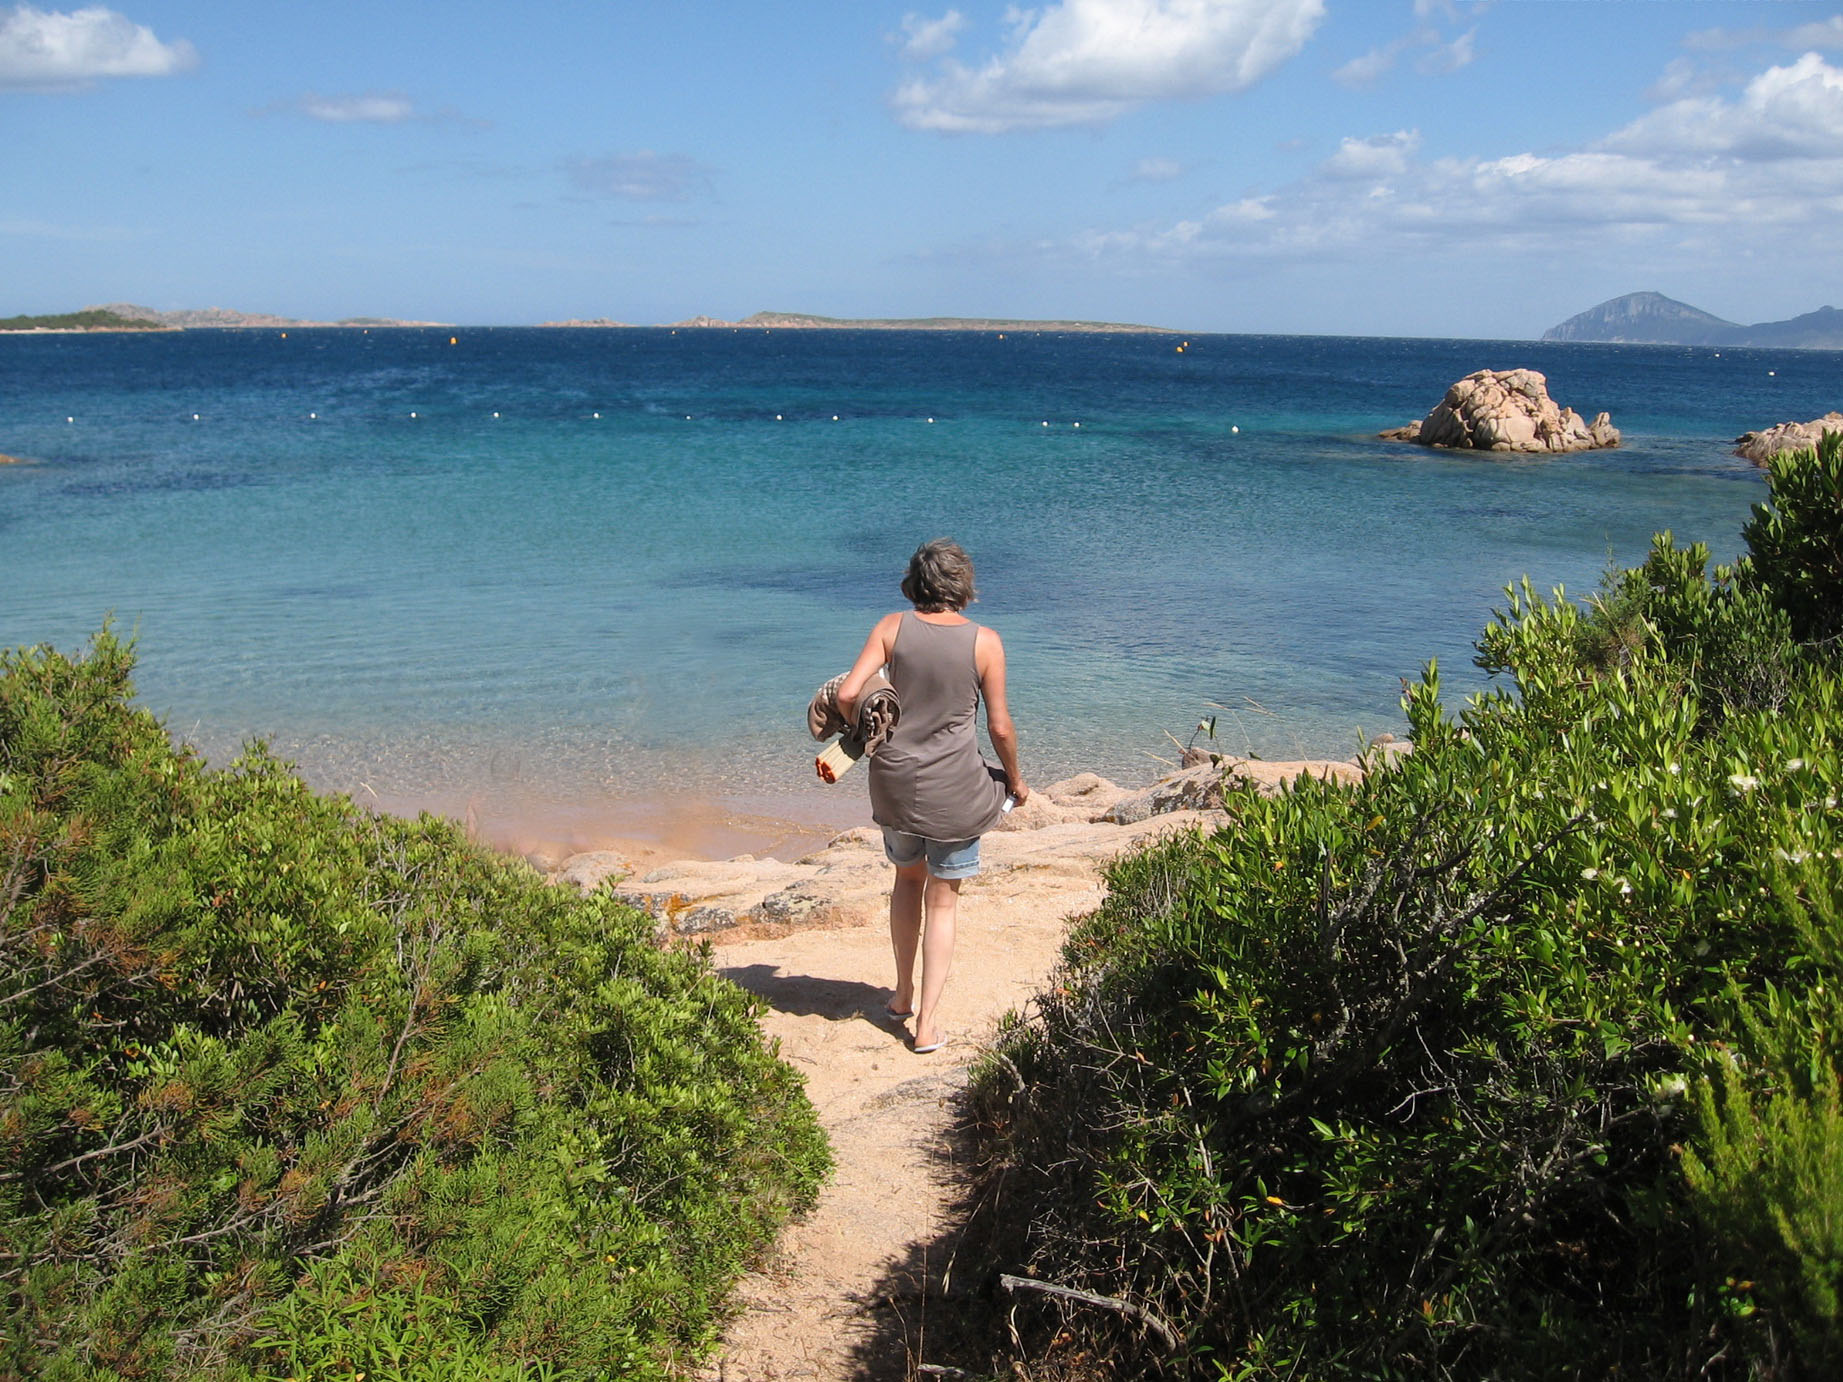 Through mediterranean scrub to Sardinian beach - Cala Jami outdoor activities